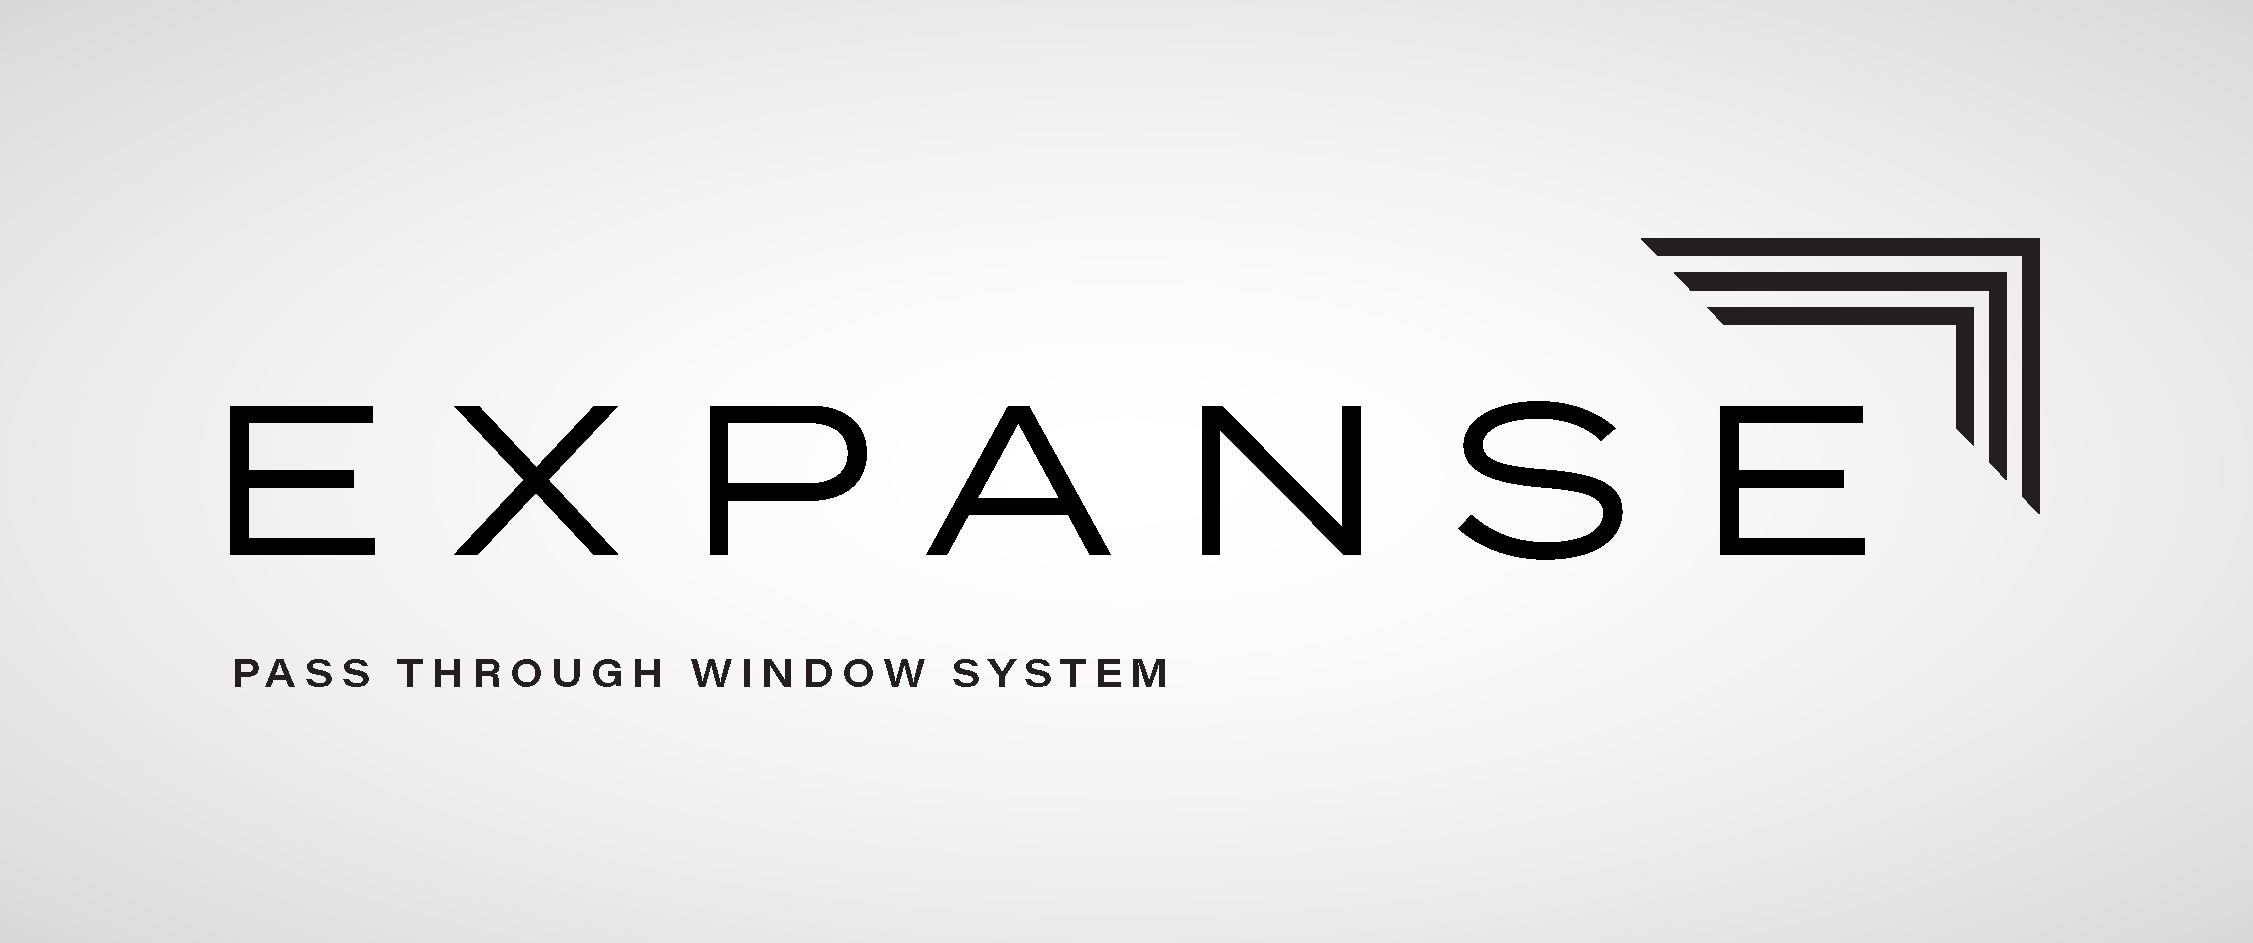 Expanse-Website-Logo.jpg